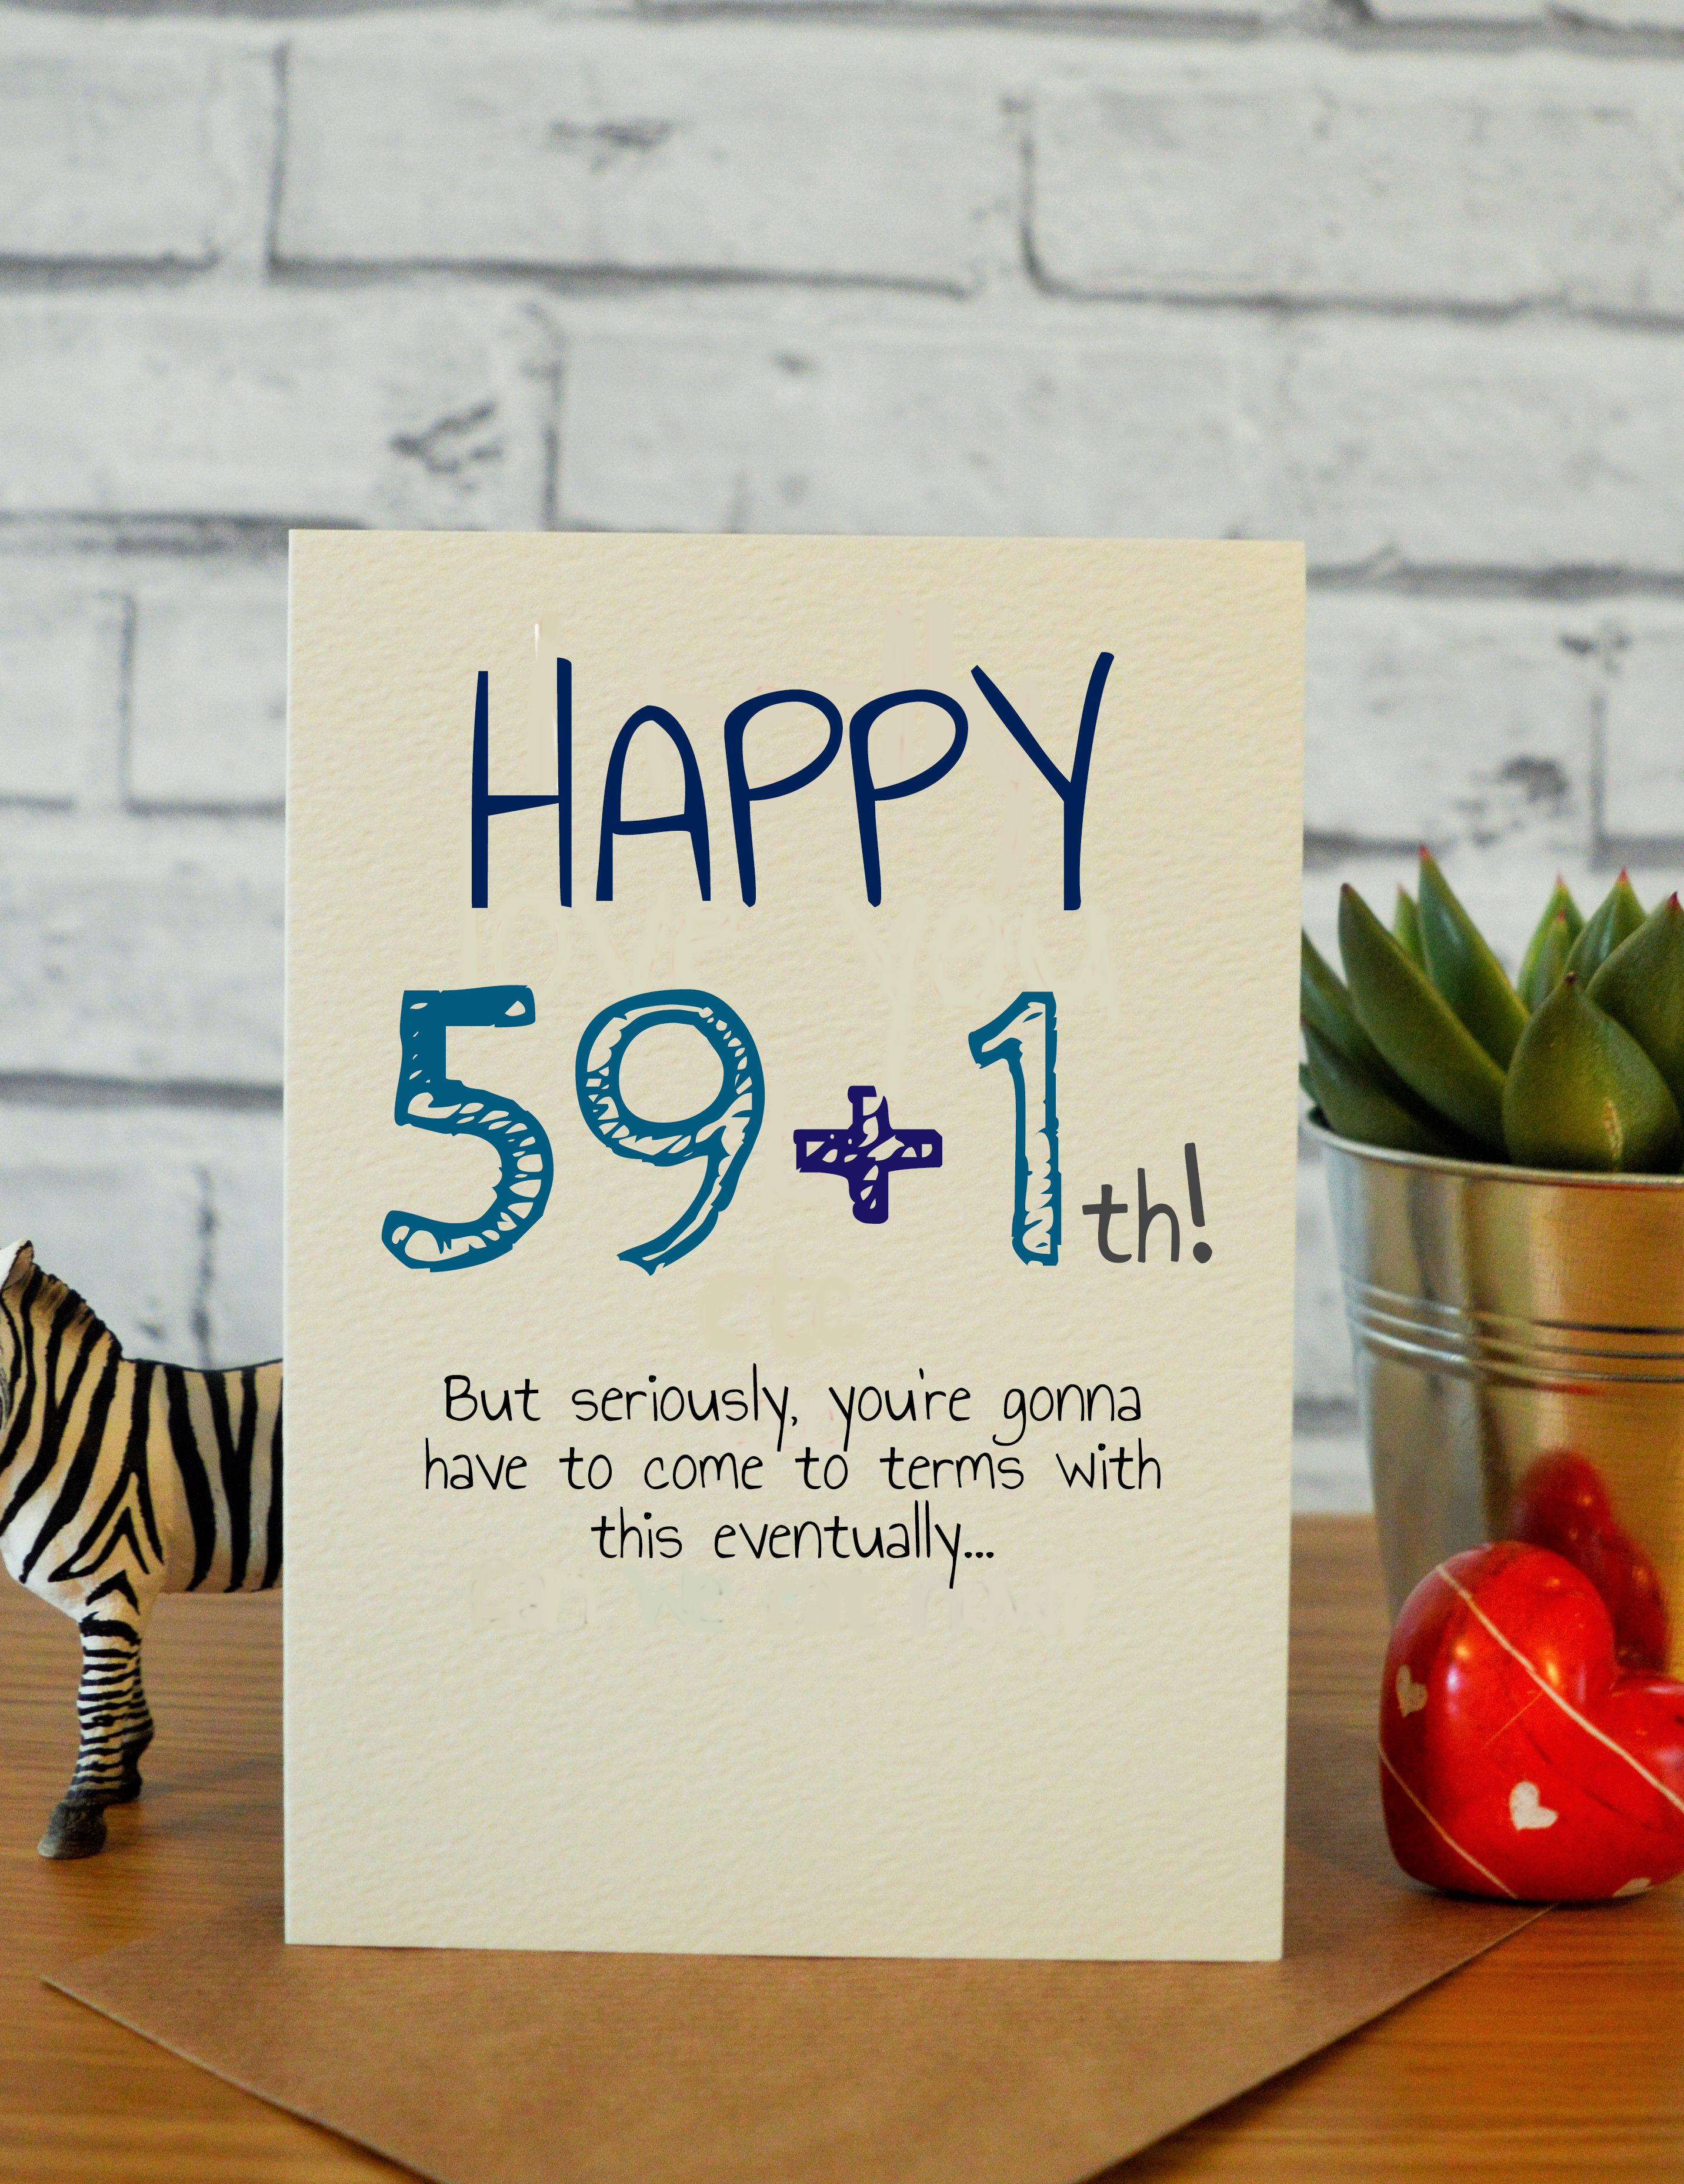 59+1th Birthday cards for him, 30th birthday gifts, 40th